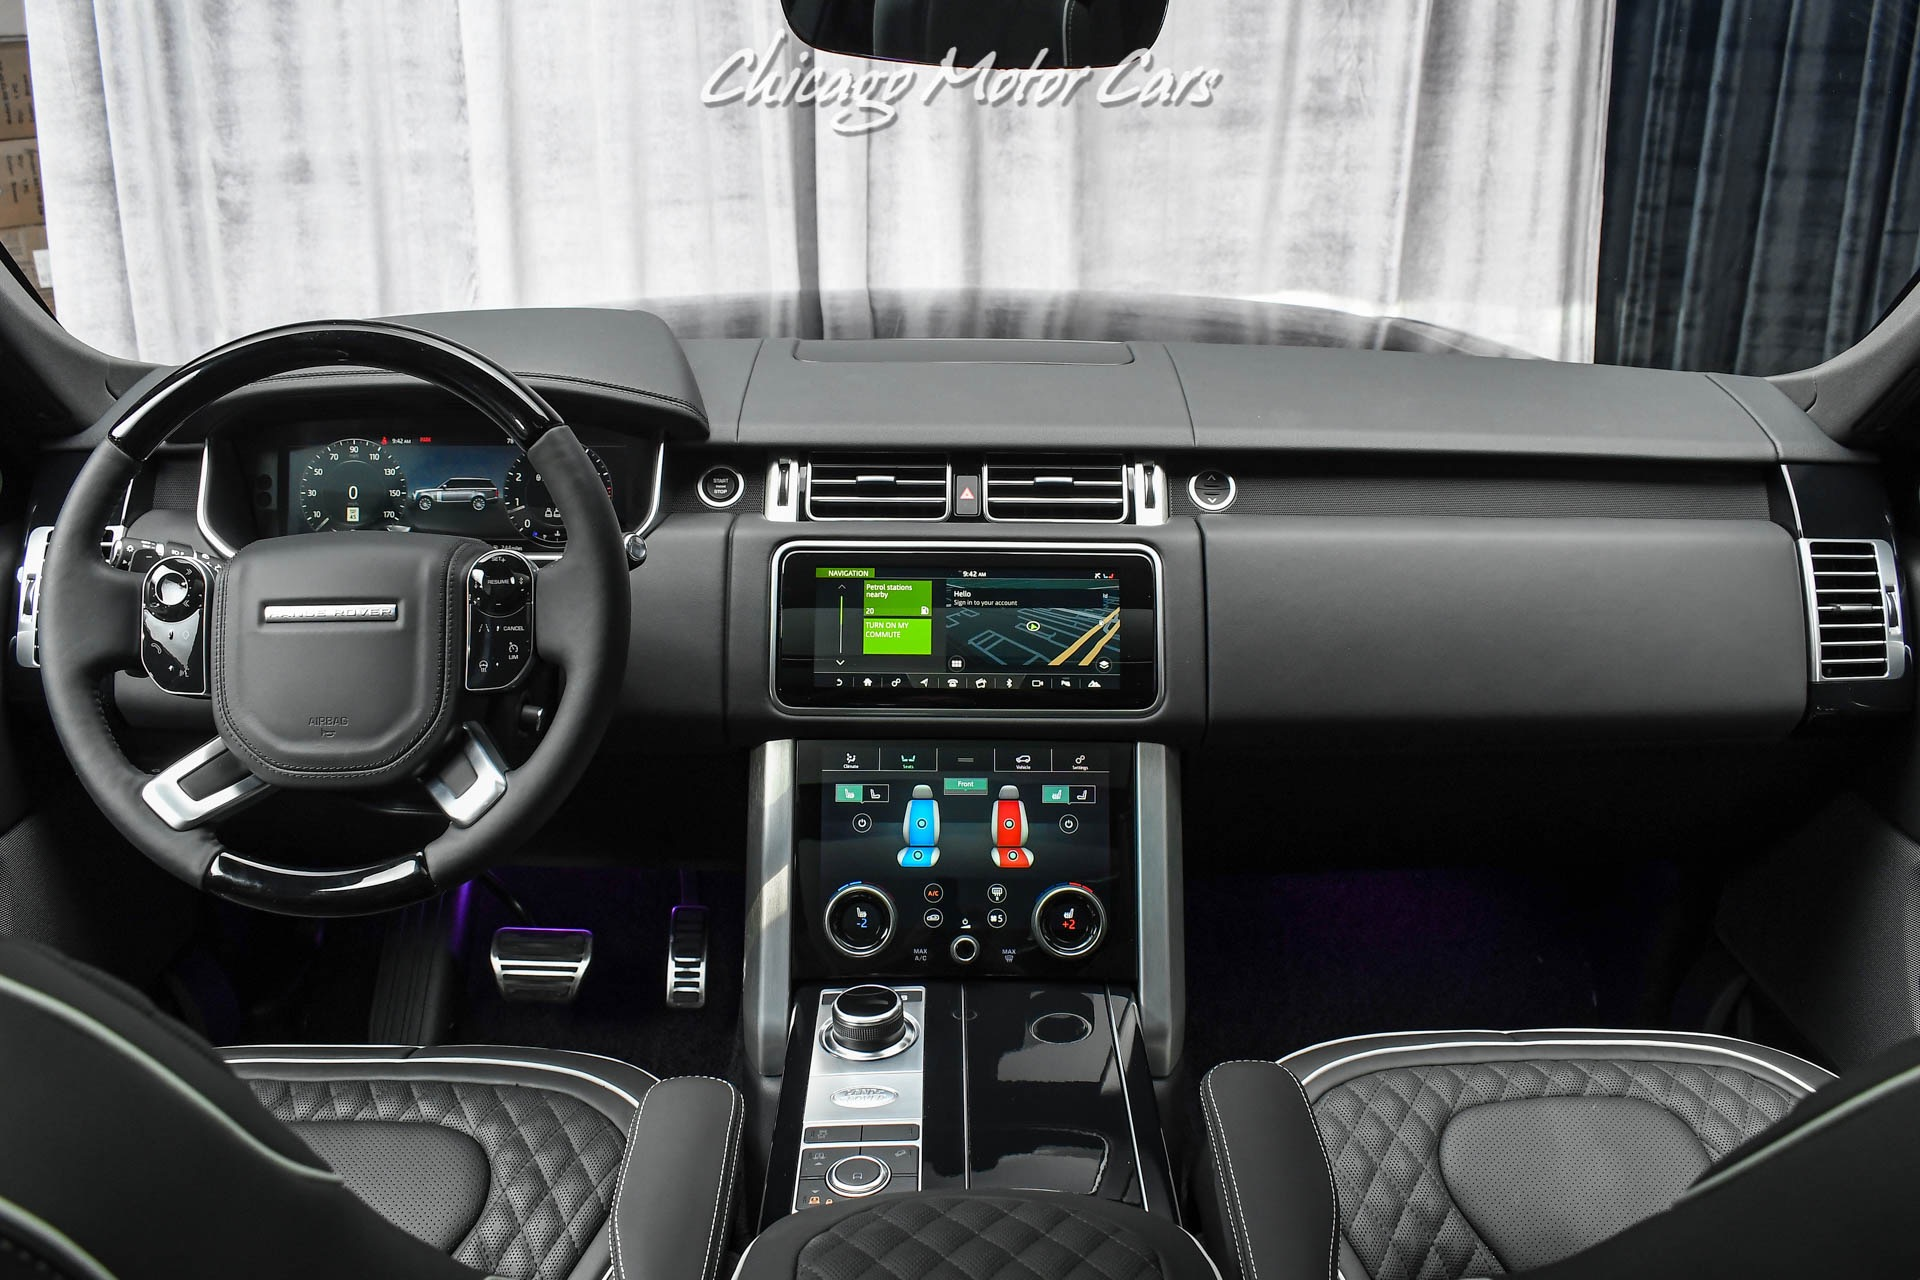 Used-2021-Land-Rover-Range-Rover-P525-Westminster-LWB-OVERFINCH-Full-Carbon-Fiber-Package-LOADED